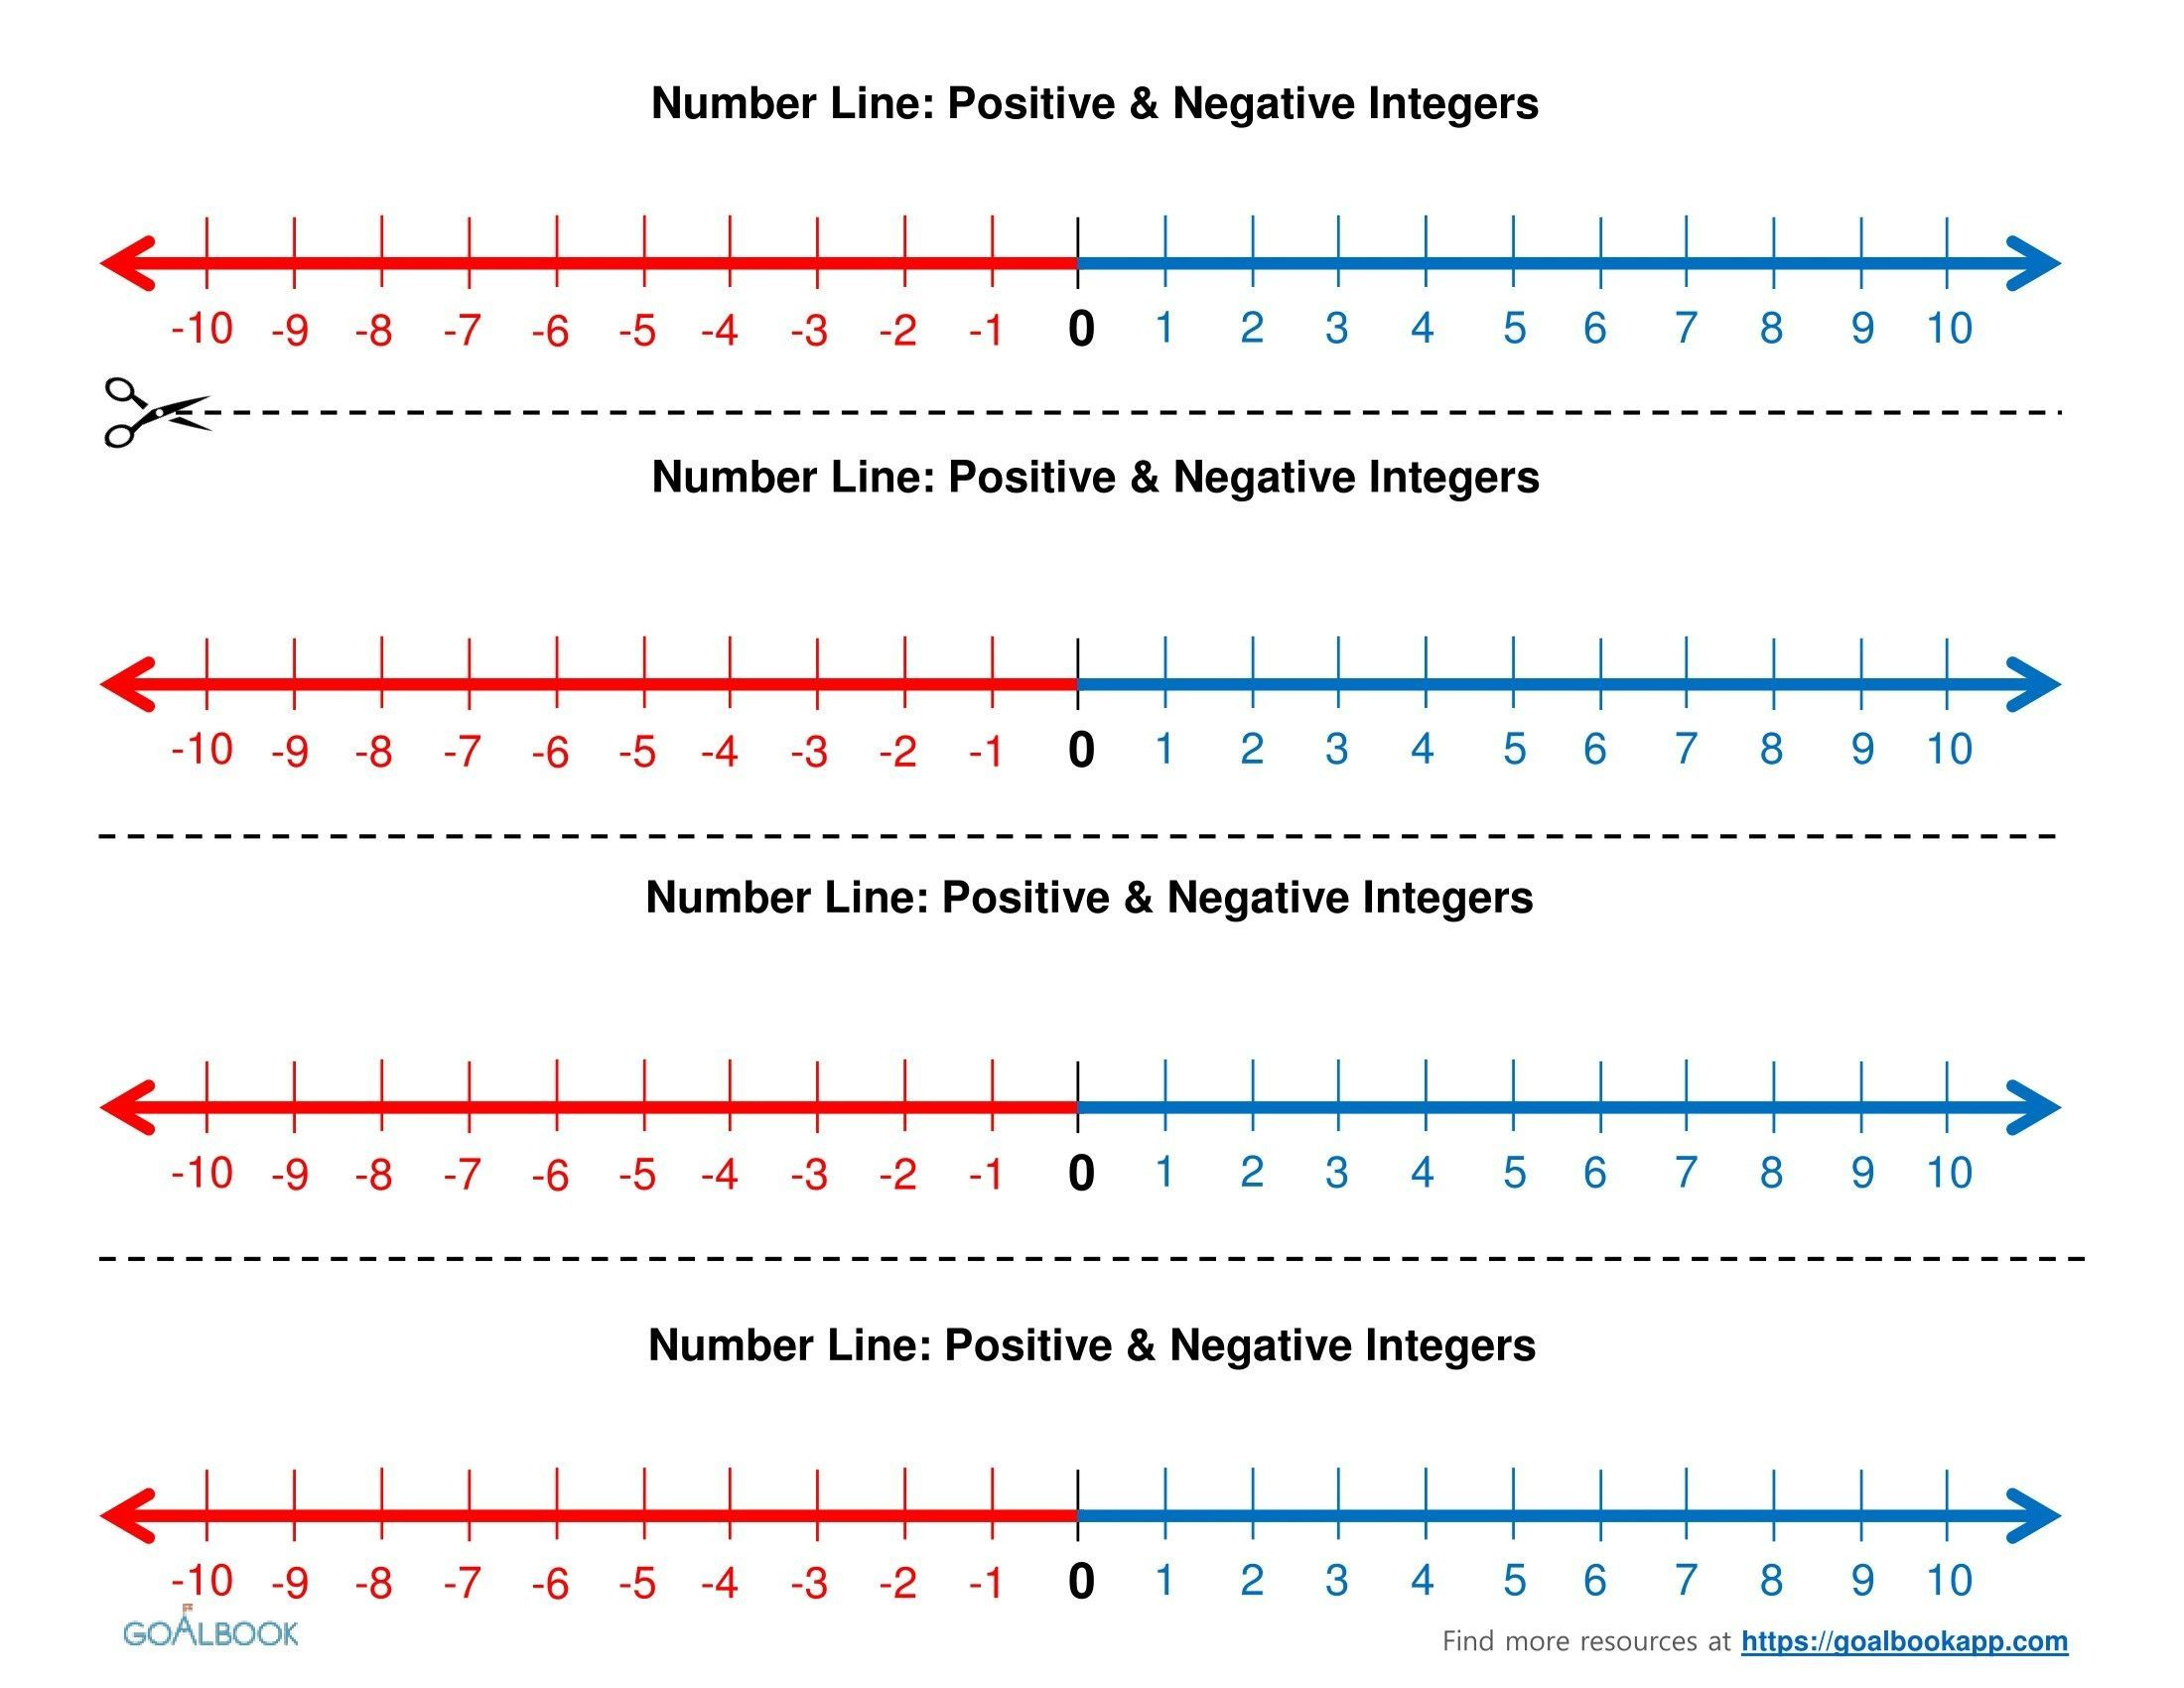 Image Result For Number Line With Positive And Negative